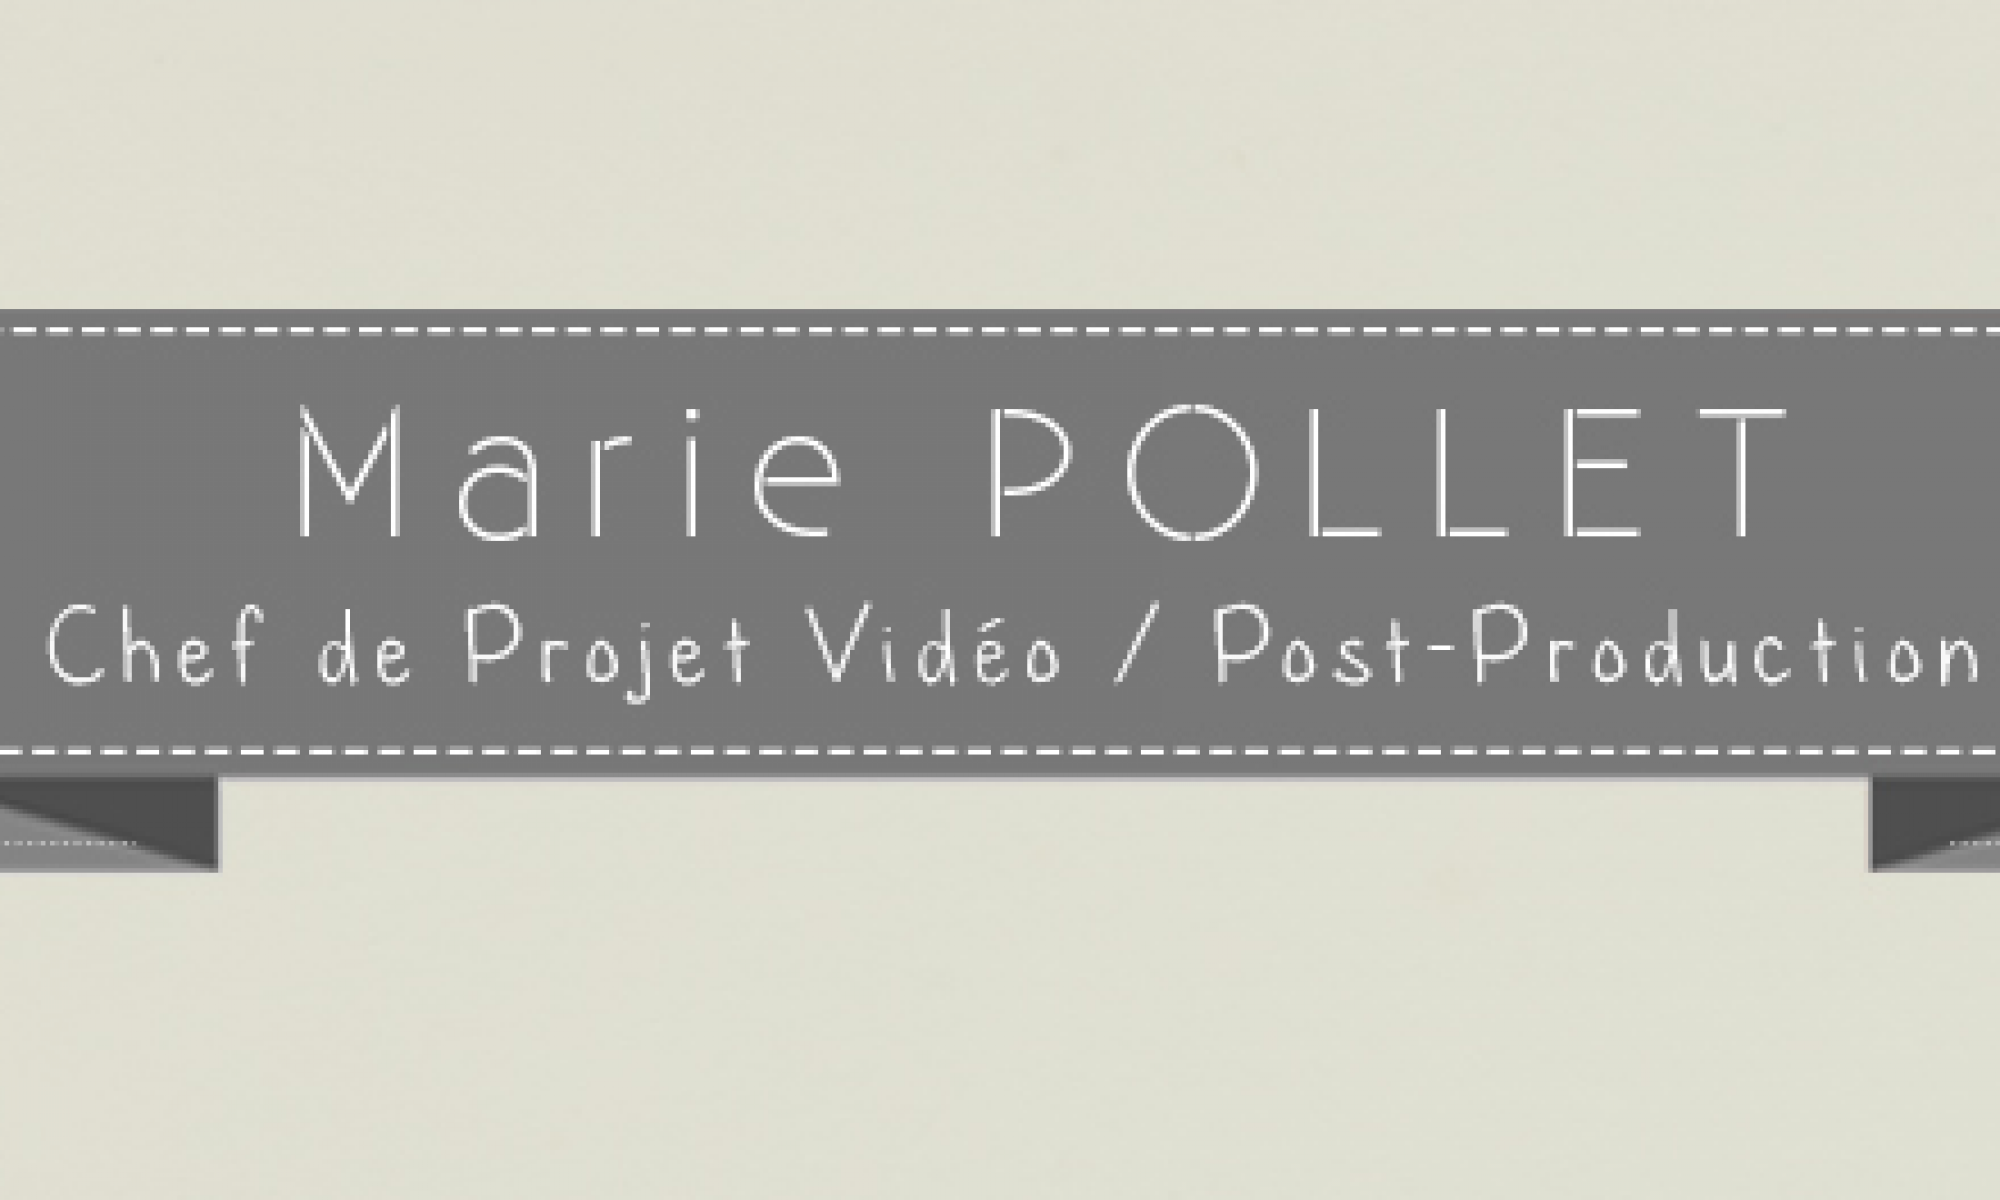 Marie Pollet